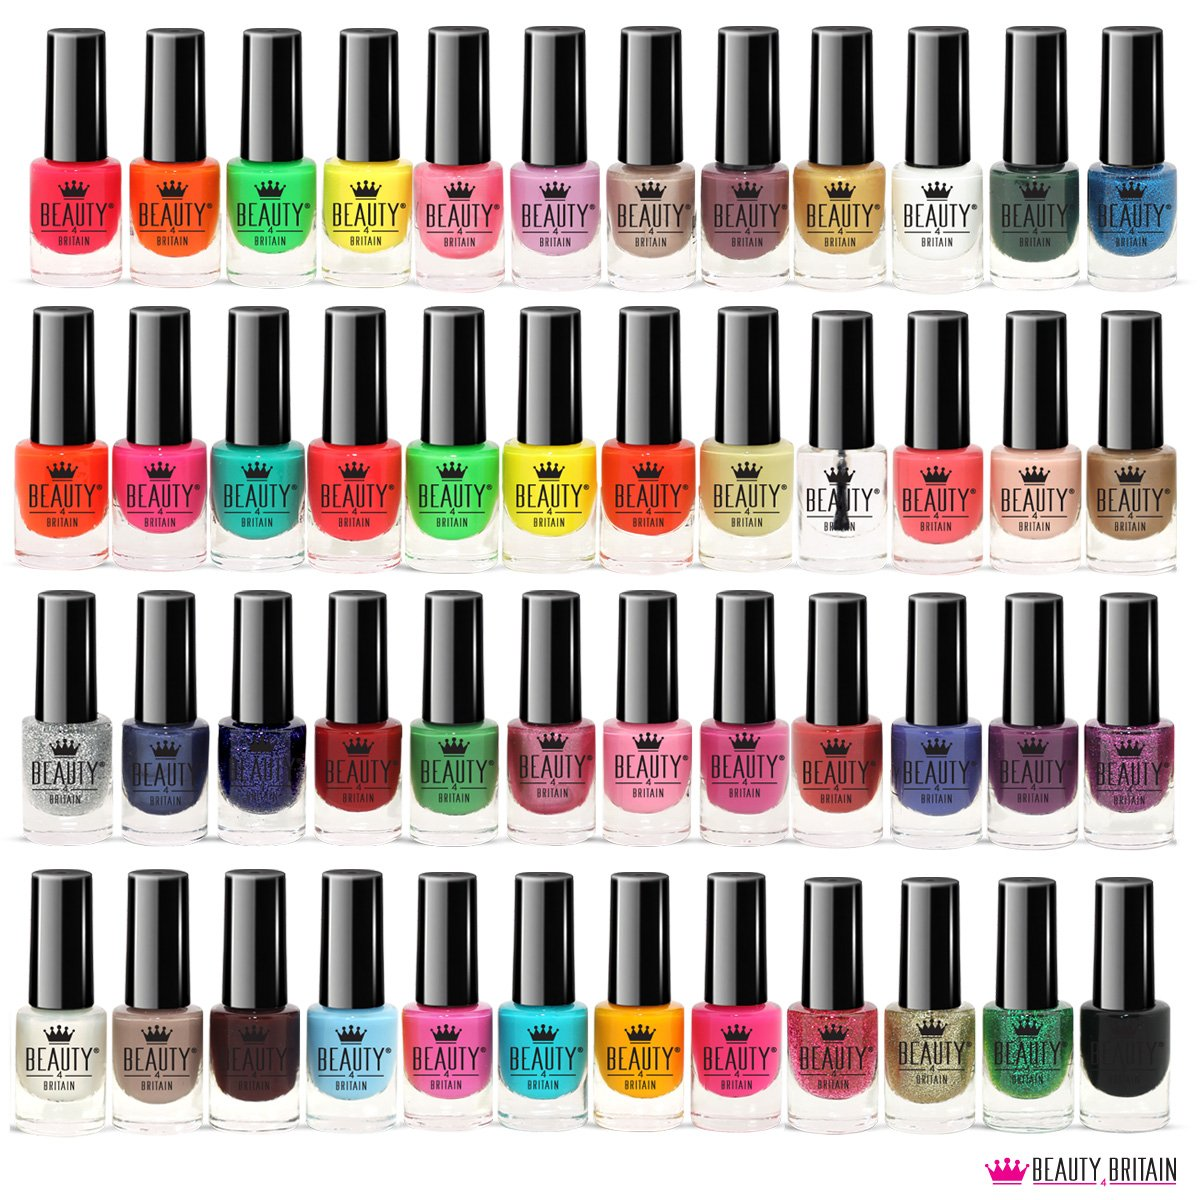 50 x NAIL POLISH VARNISH SET 48 DIFFERENT COLOURS 2 NAIL ART STICKER SETS 2 DISPLAY BOXES B4B